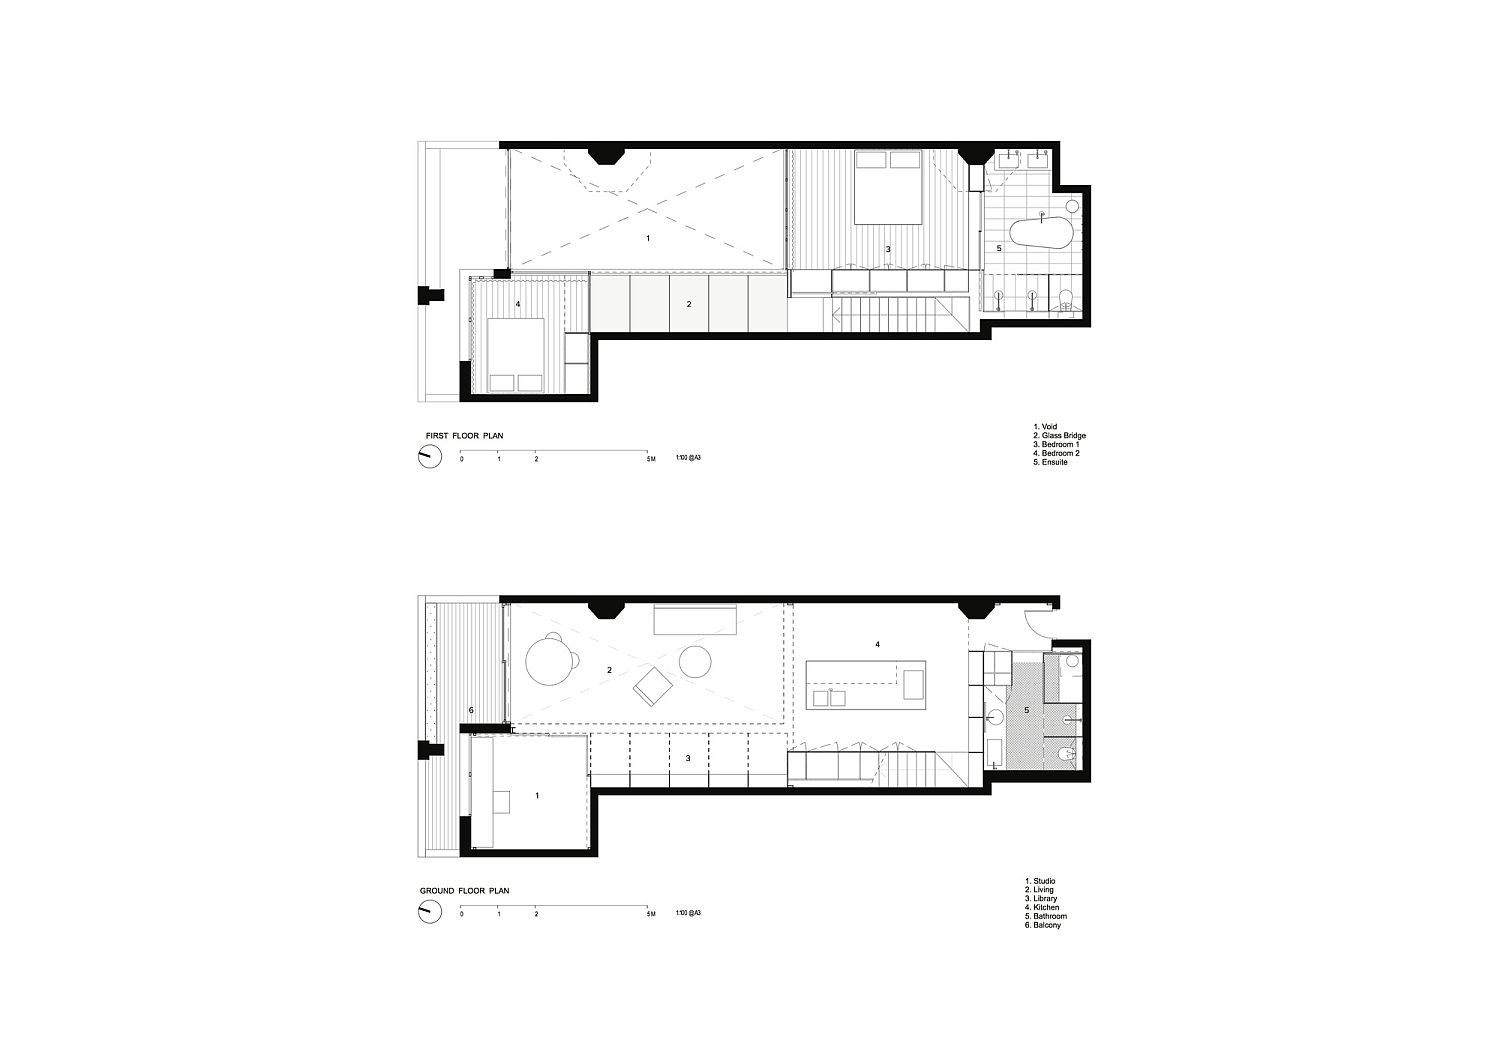 Design plan of the interior with fabulous modern interiors